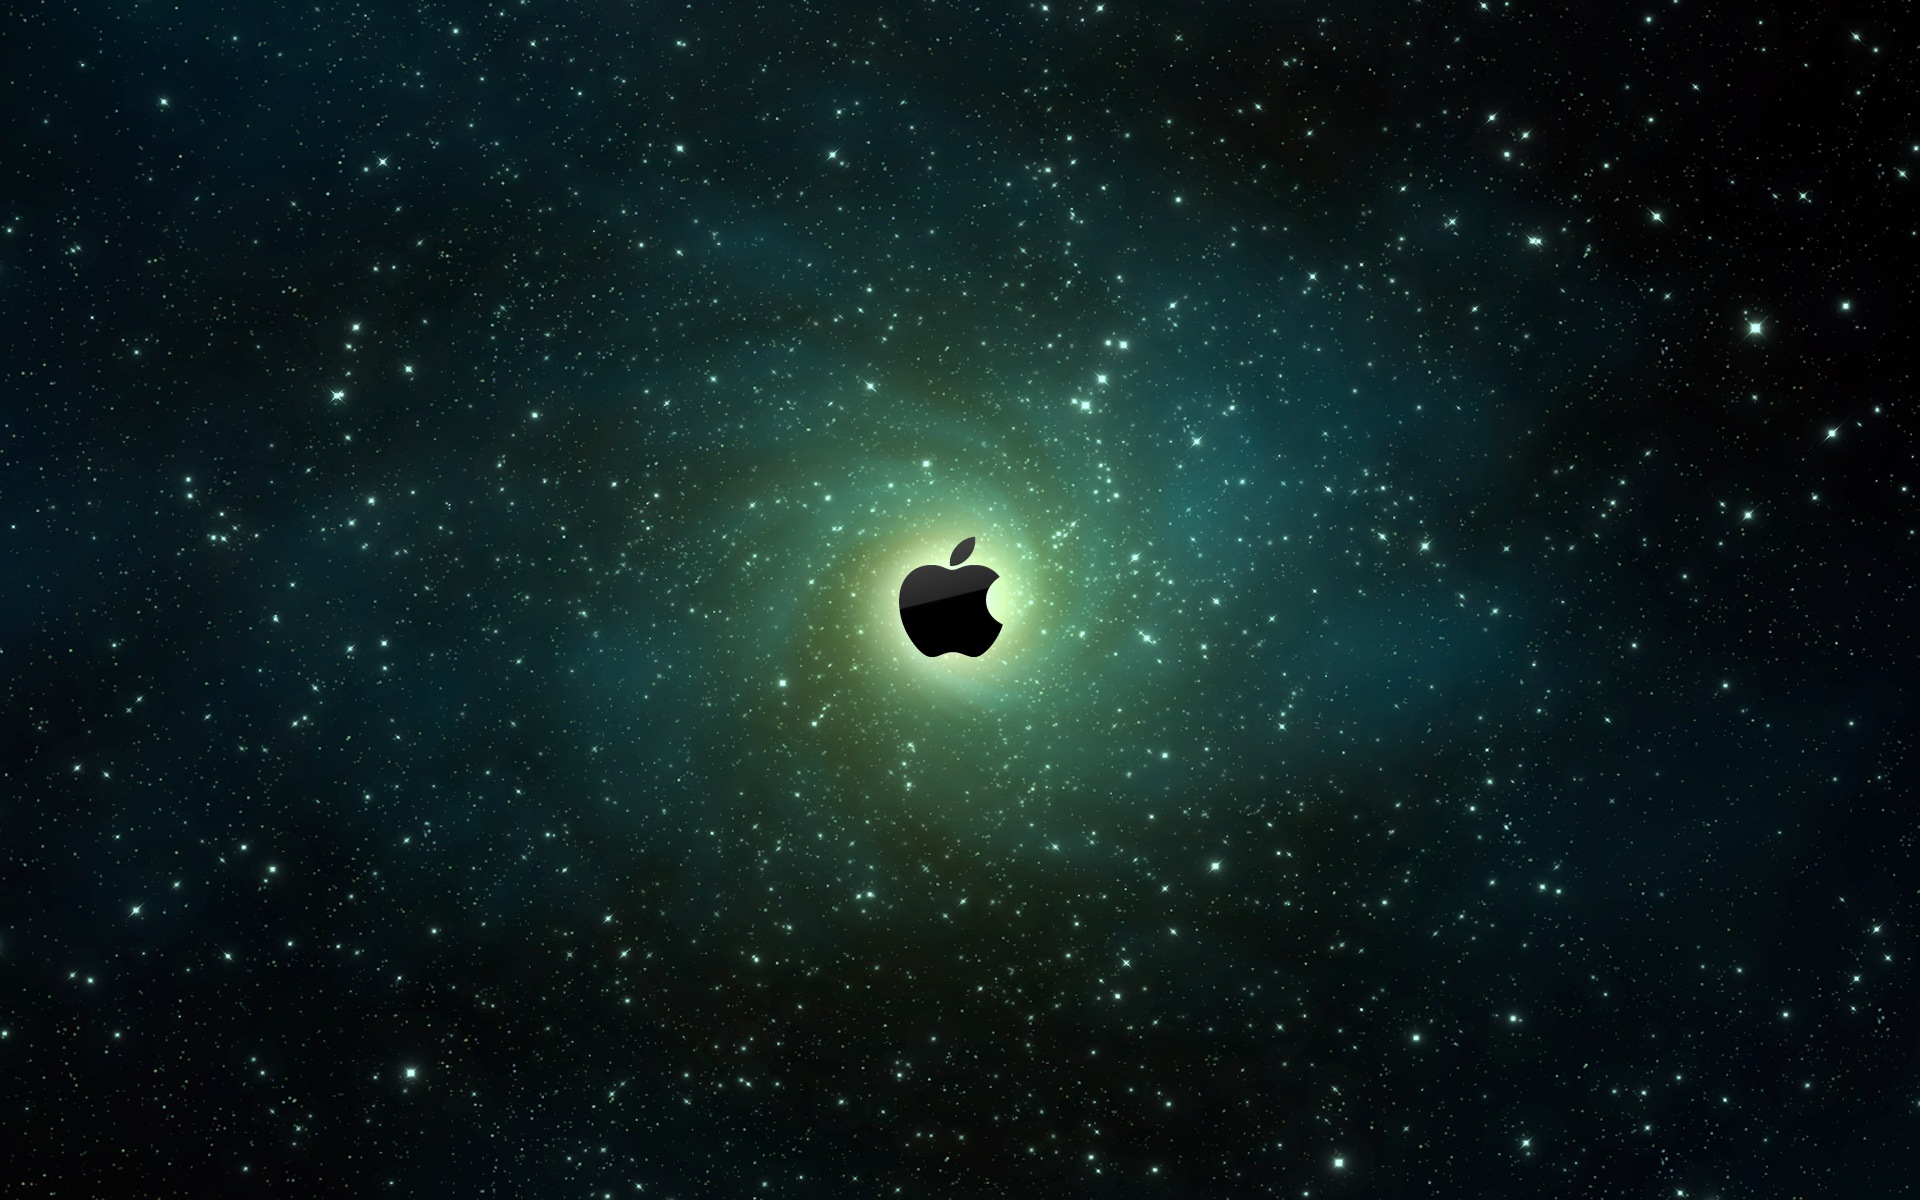 Apple Vortex Image